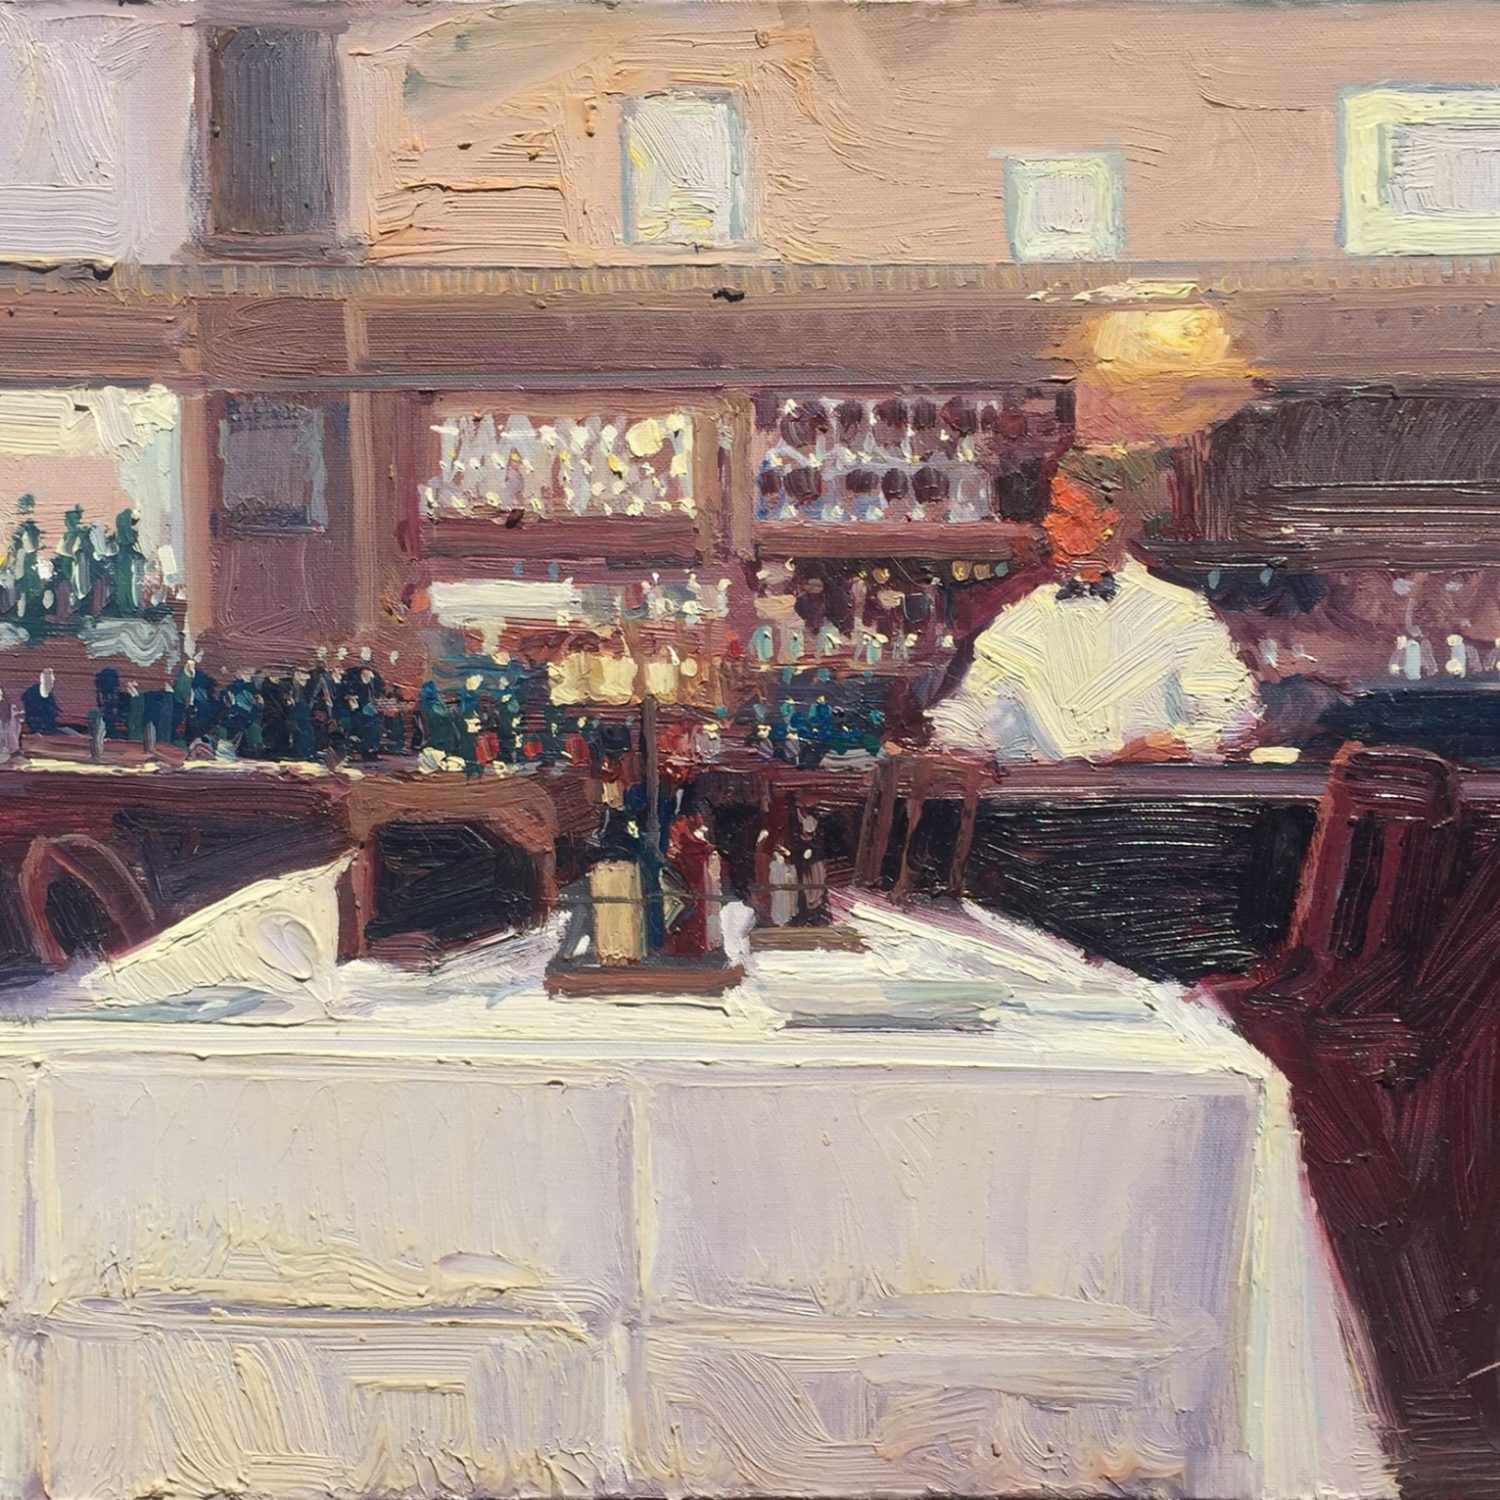 """Tabasco - Elite Cafe, S.F."" - 16"" x 20"" - Oil - Ken Auster"